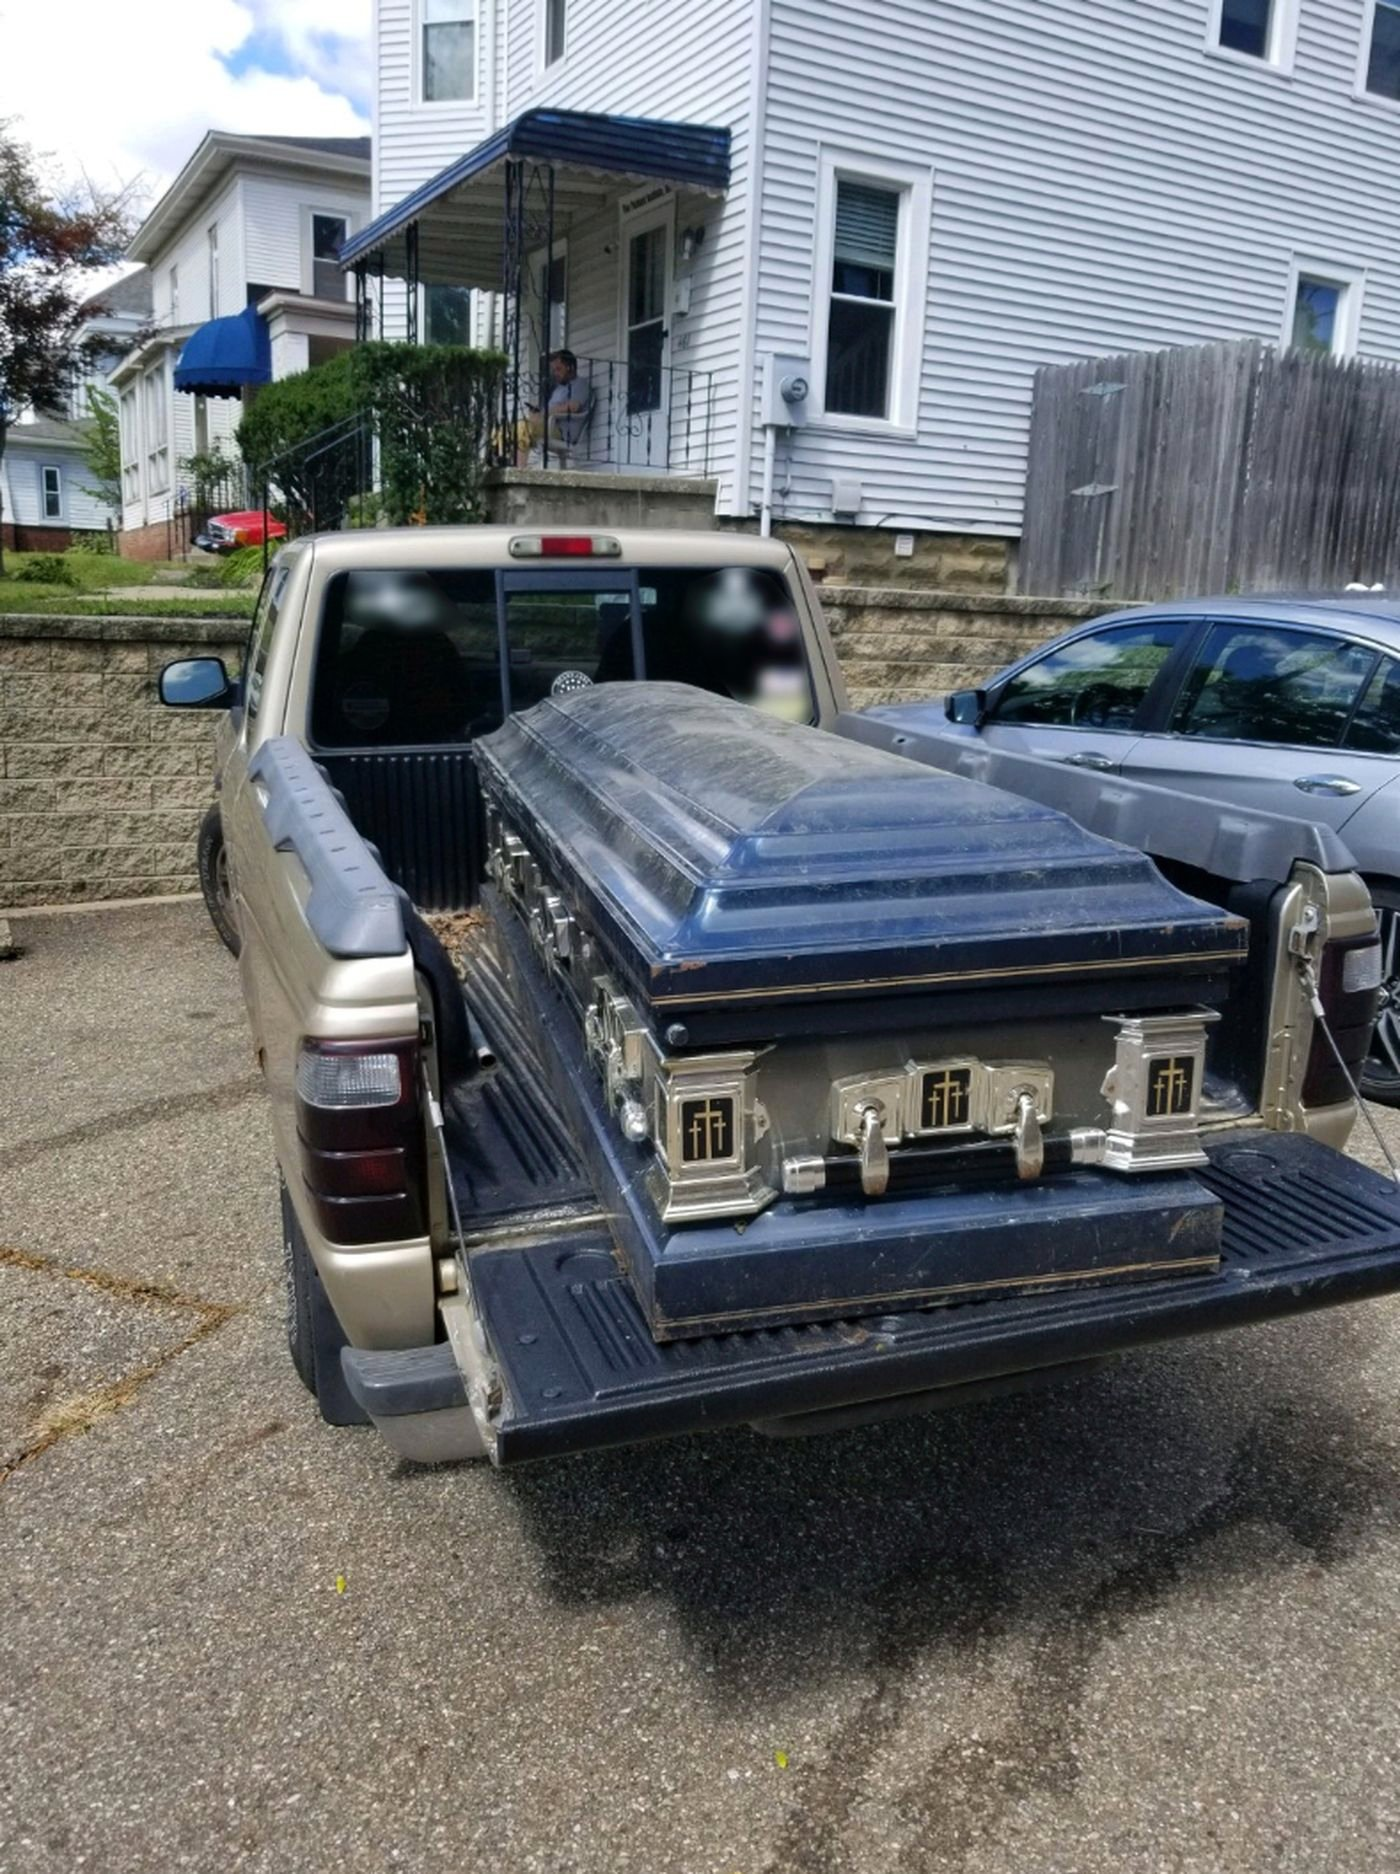 The casket found in Akron was locked. (Source: Heather Bailey)